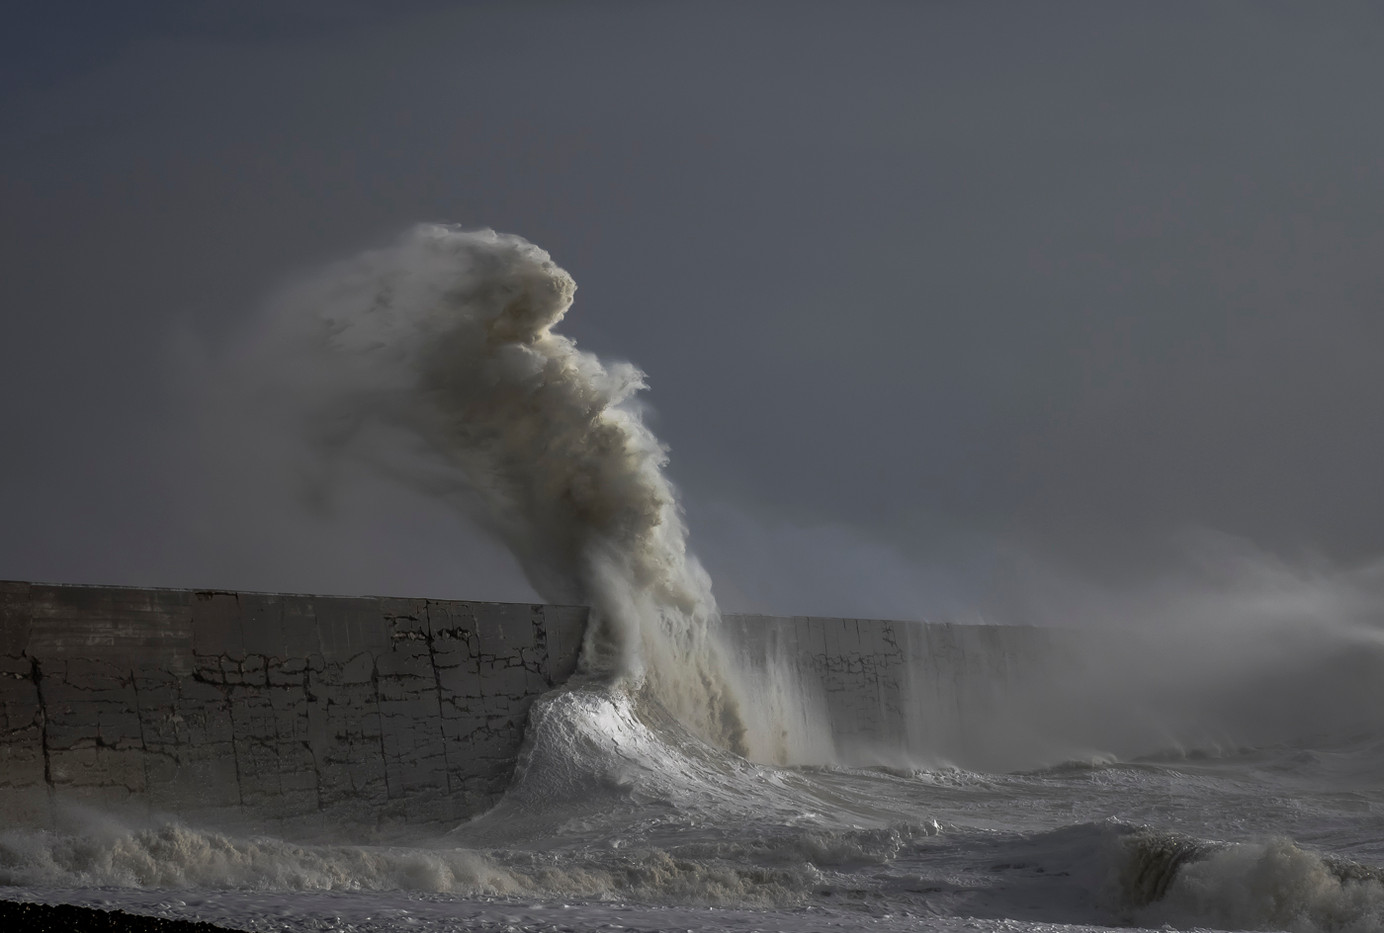 20 STORM WAVE by Terry Day